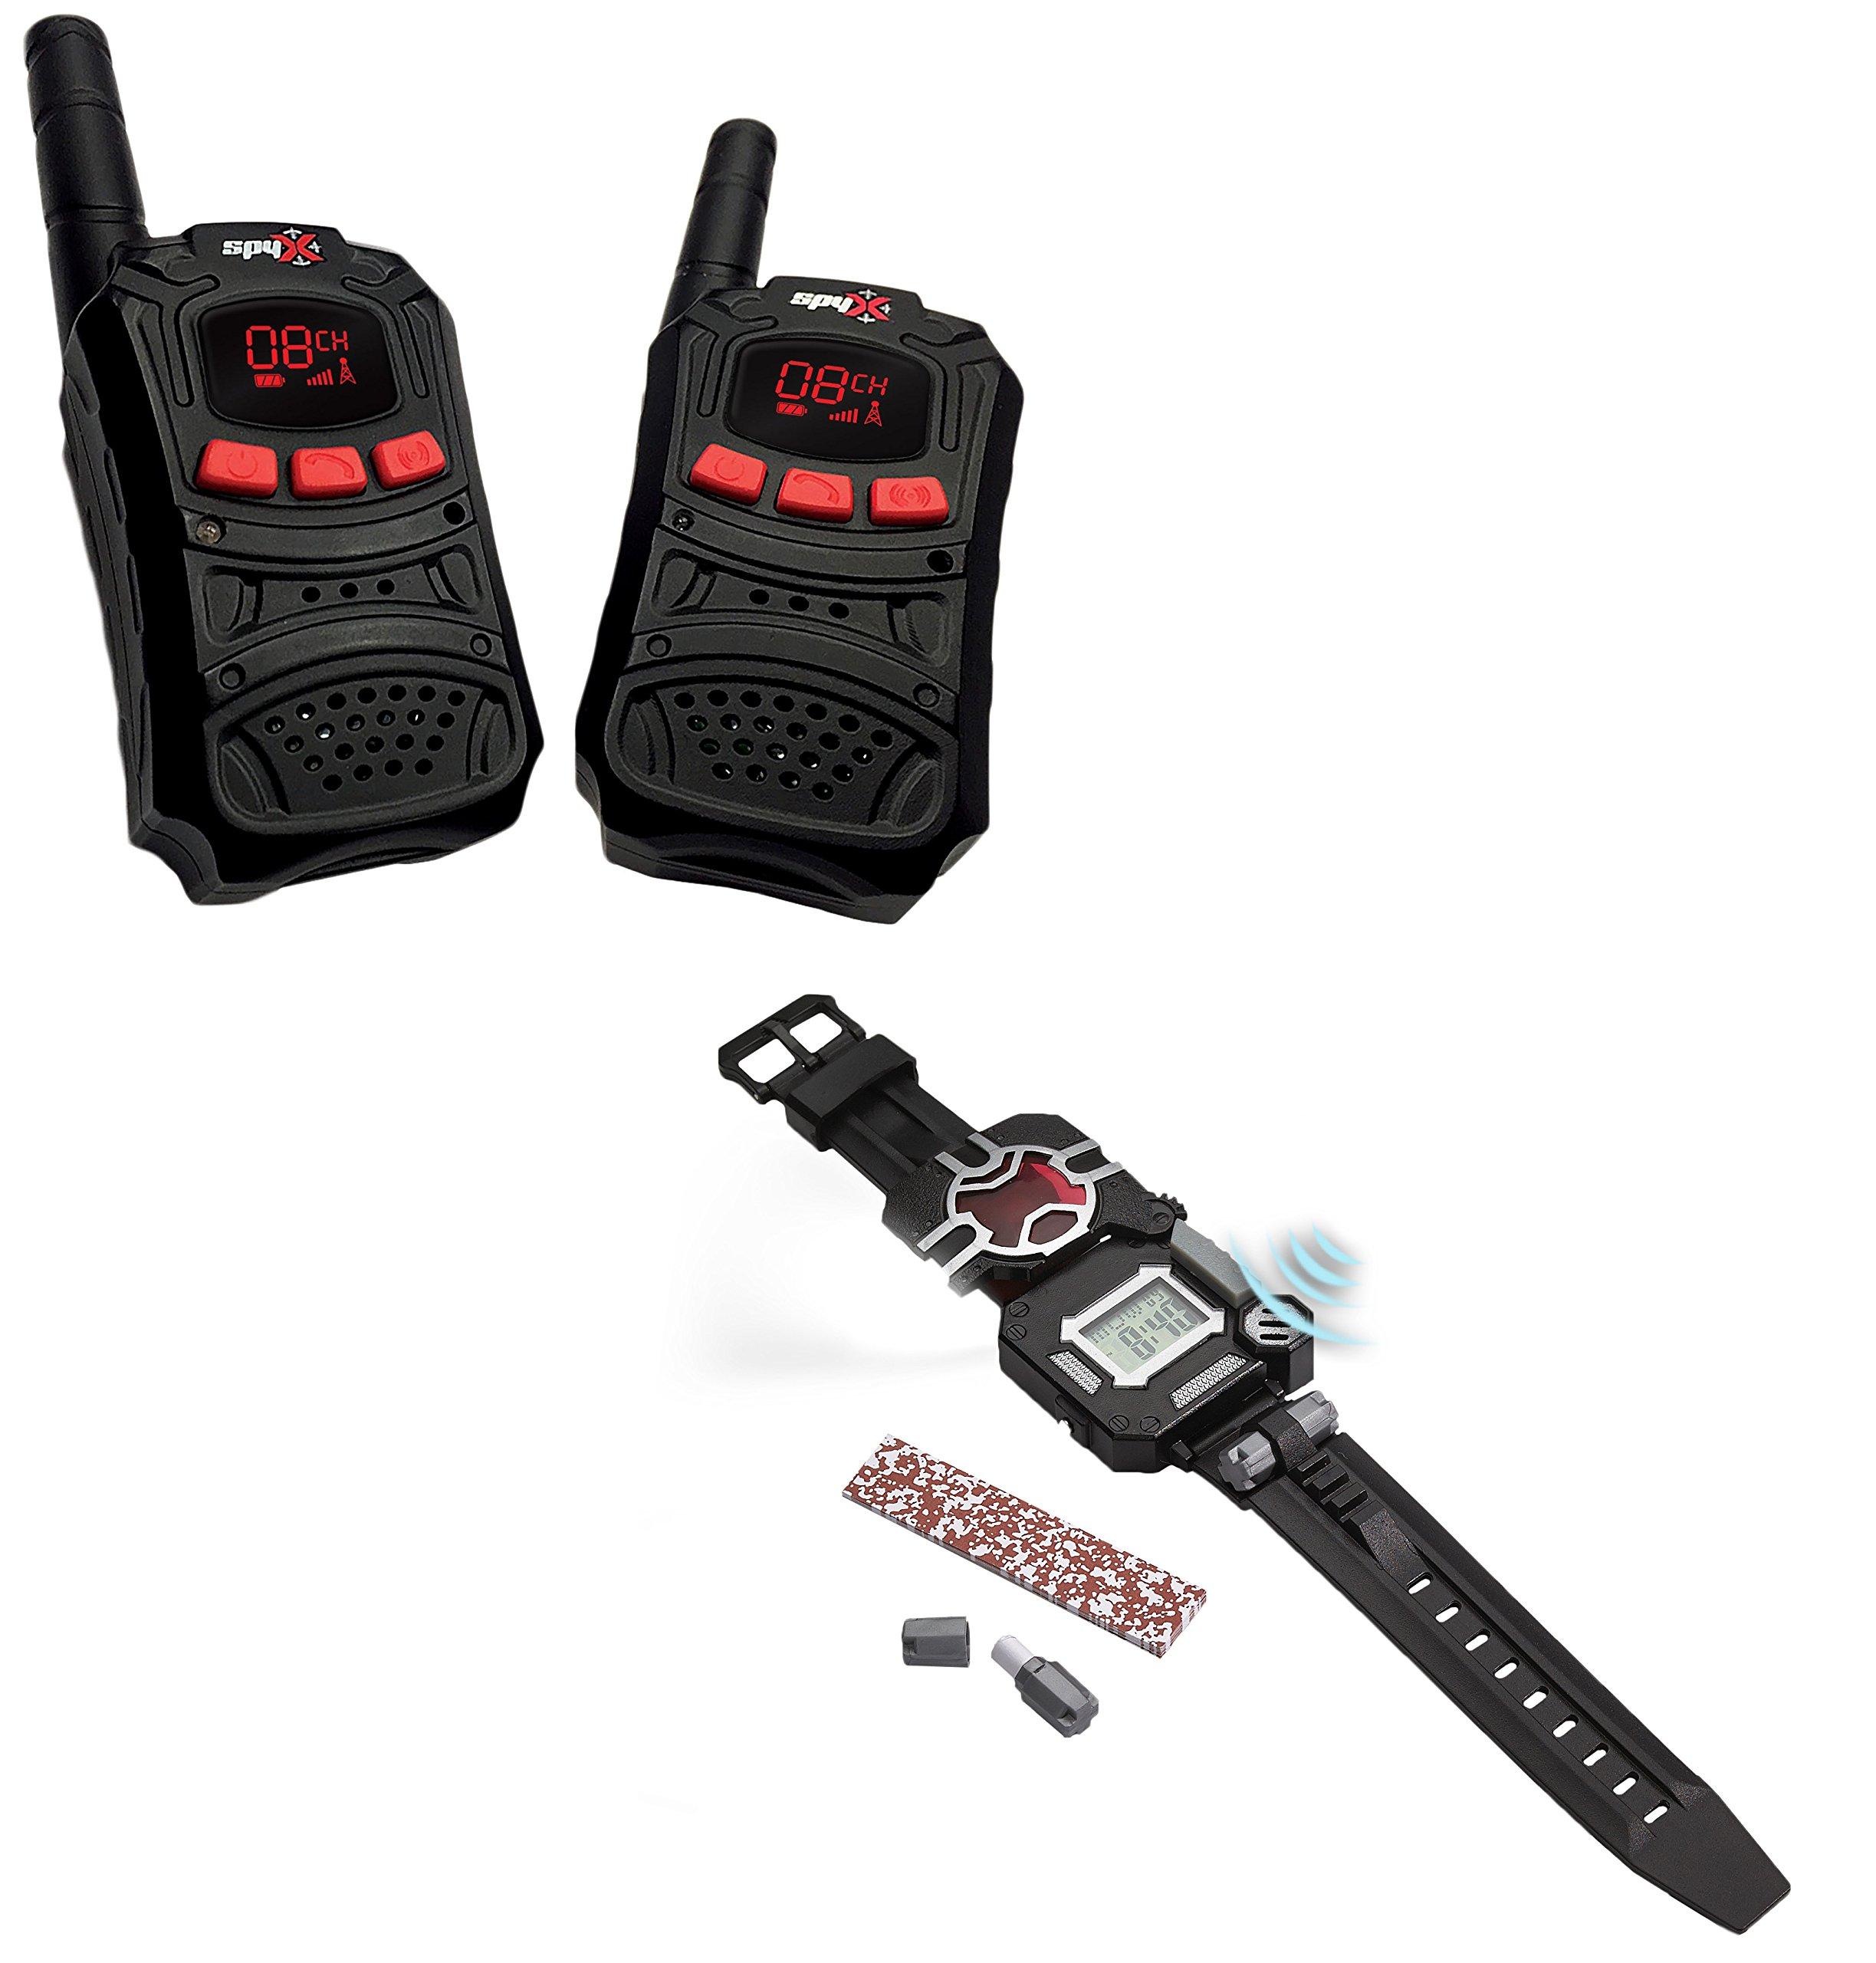 SpyX Walkie Talkies + Recon Watch - Double Agent Tool Set! 2 Pack Of Walkie Talkies + An 8-in-1 Watch. Essential Items for Any Spy Gear Collection To Get The Job Done While Spying On The Enemy